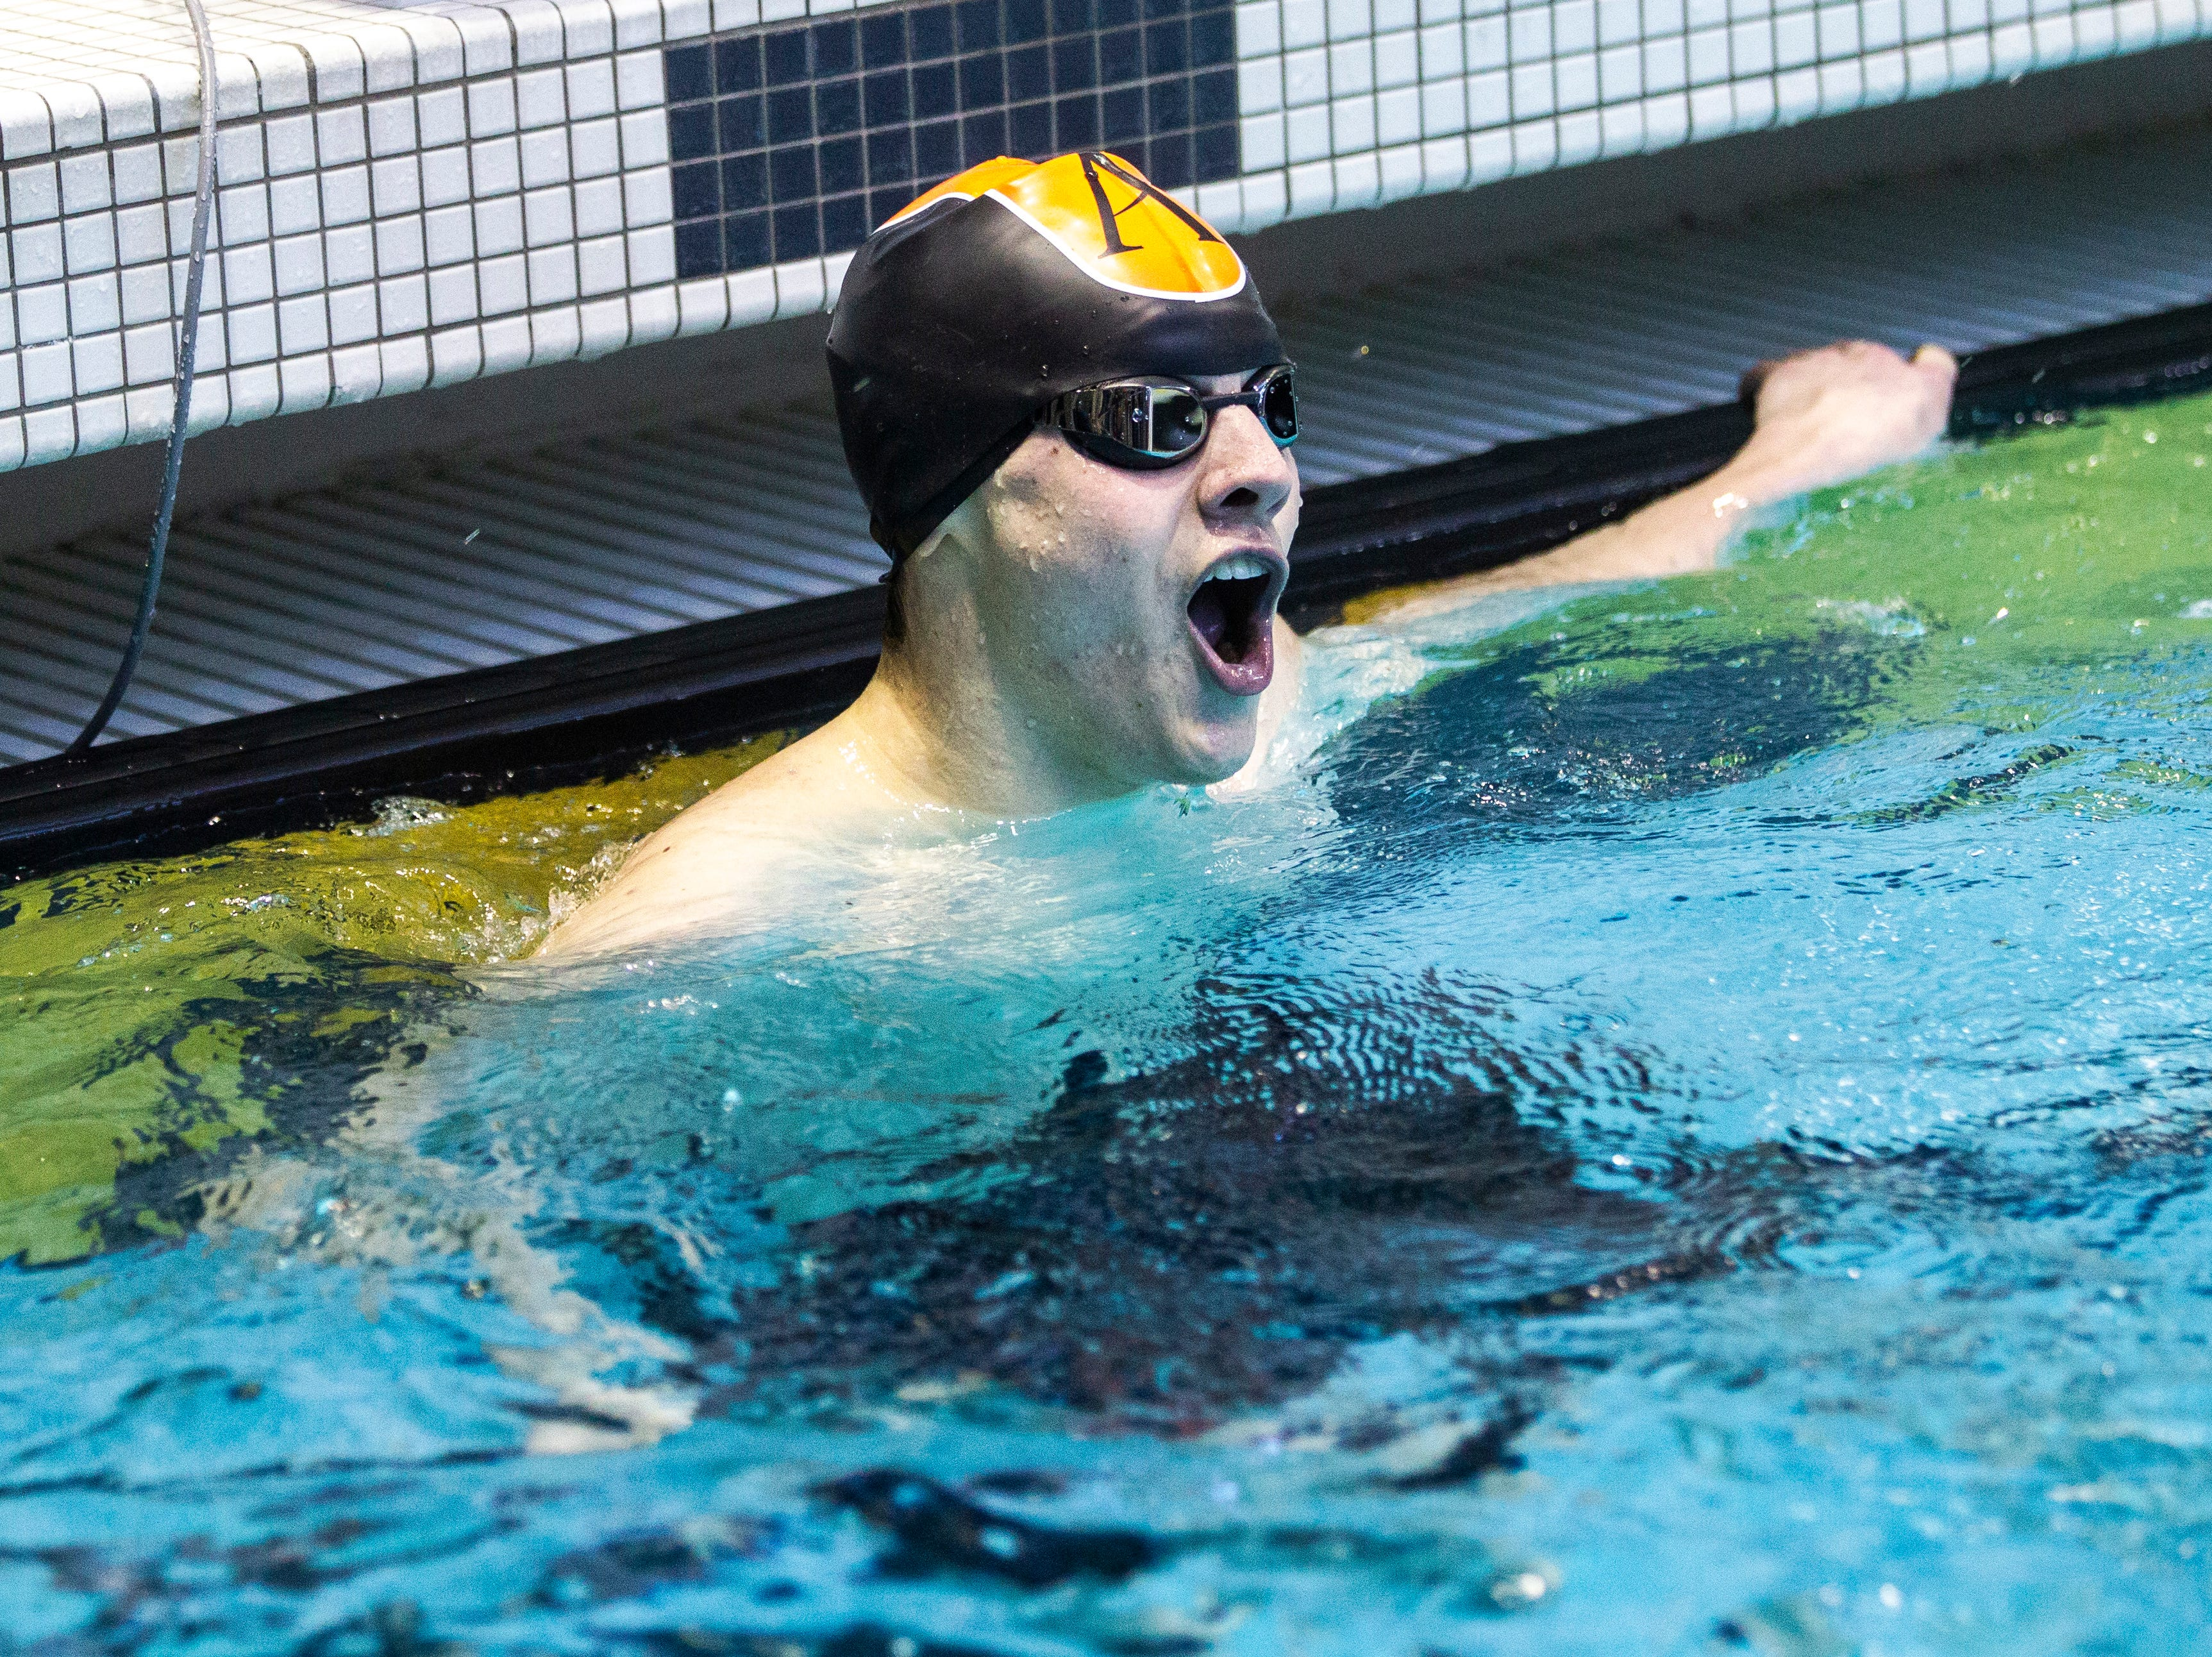 Ames senior Ethan Johnson reacts after winning the first heat of the 200 yard individual medley during the Iowa boys' state swimming regional championship meet on Saturday, Feb. 9, 2019 at Campus Recreation and Wellness Center on the University of Iowa campus in Iowa City, Iowa. Johnson finished 14th overall, with a time of 1:59.95.